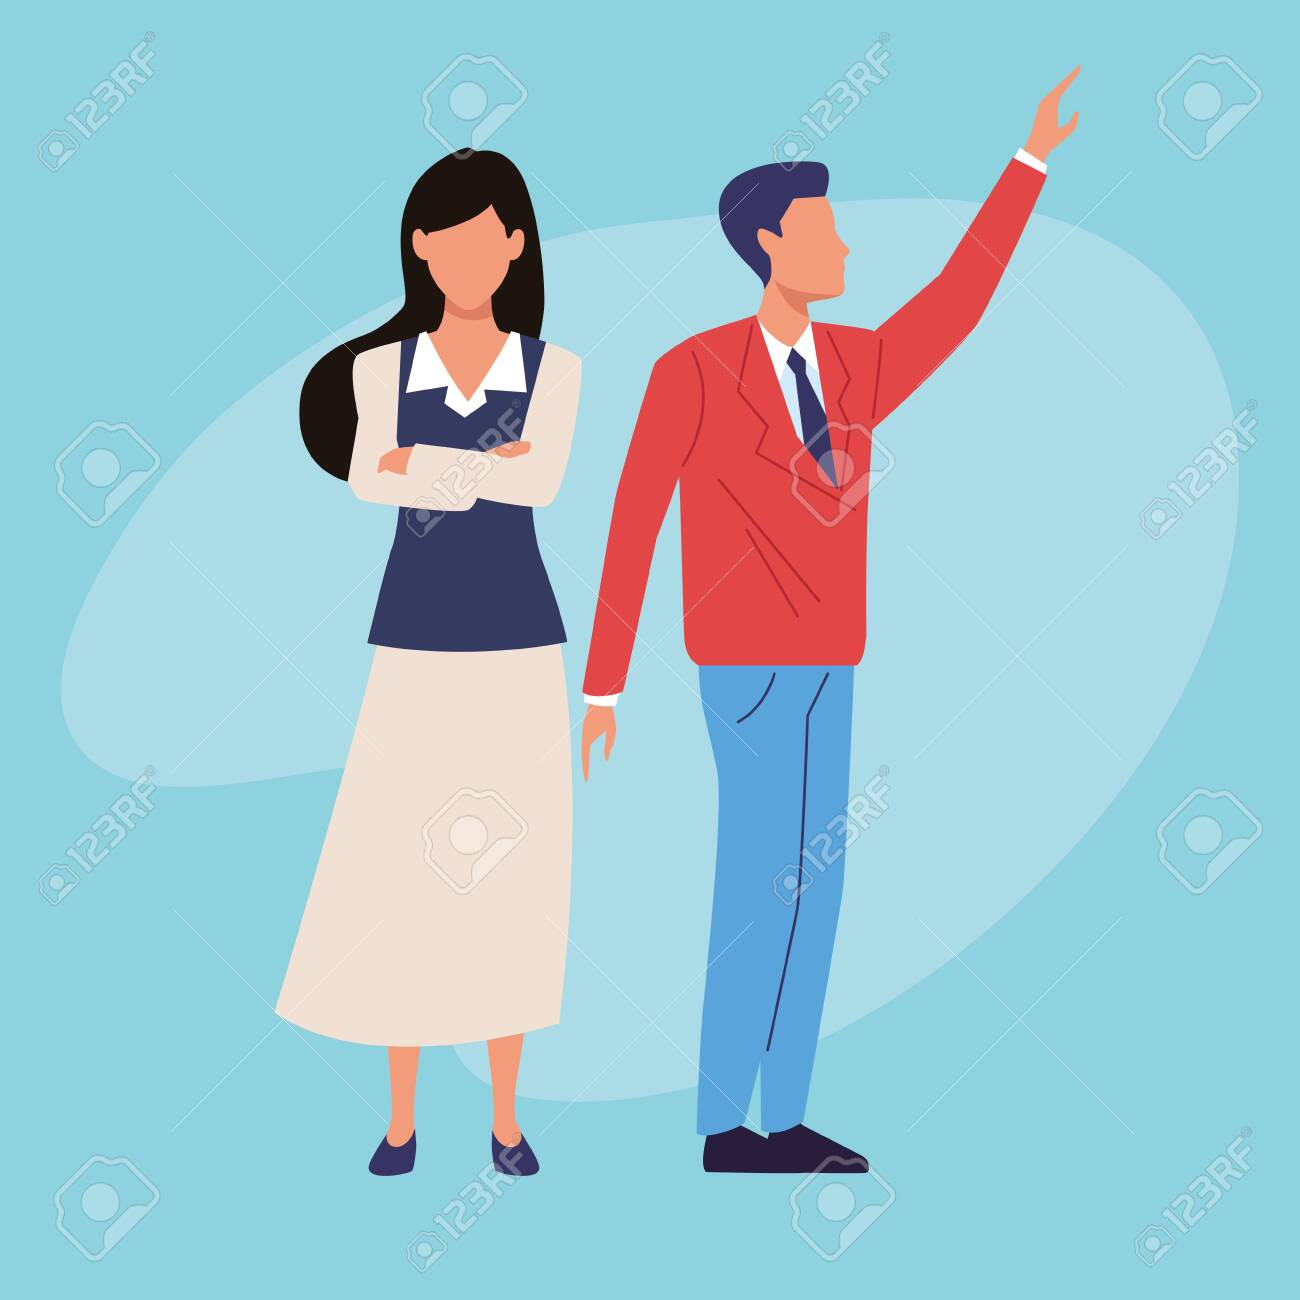 Executive businessman and businesswoman crossed arms on blue background vector illustration graphic design. - 136272713